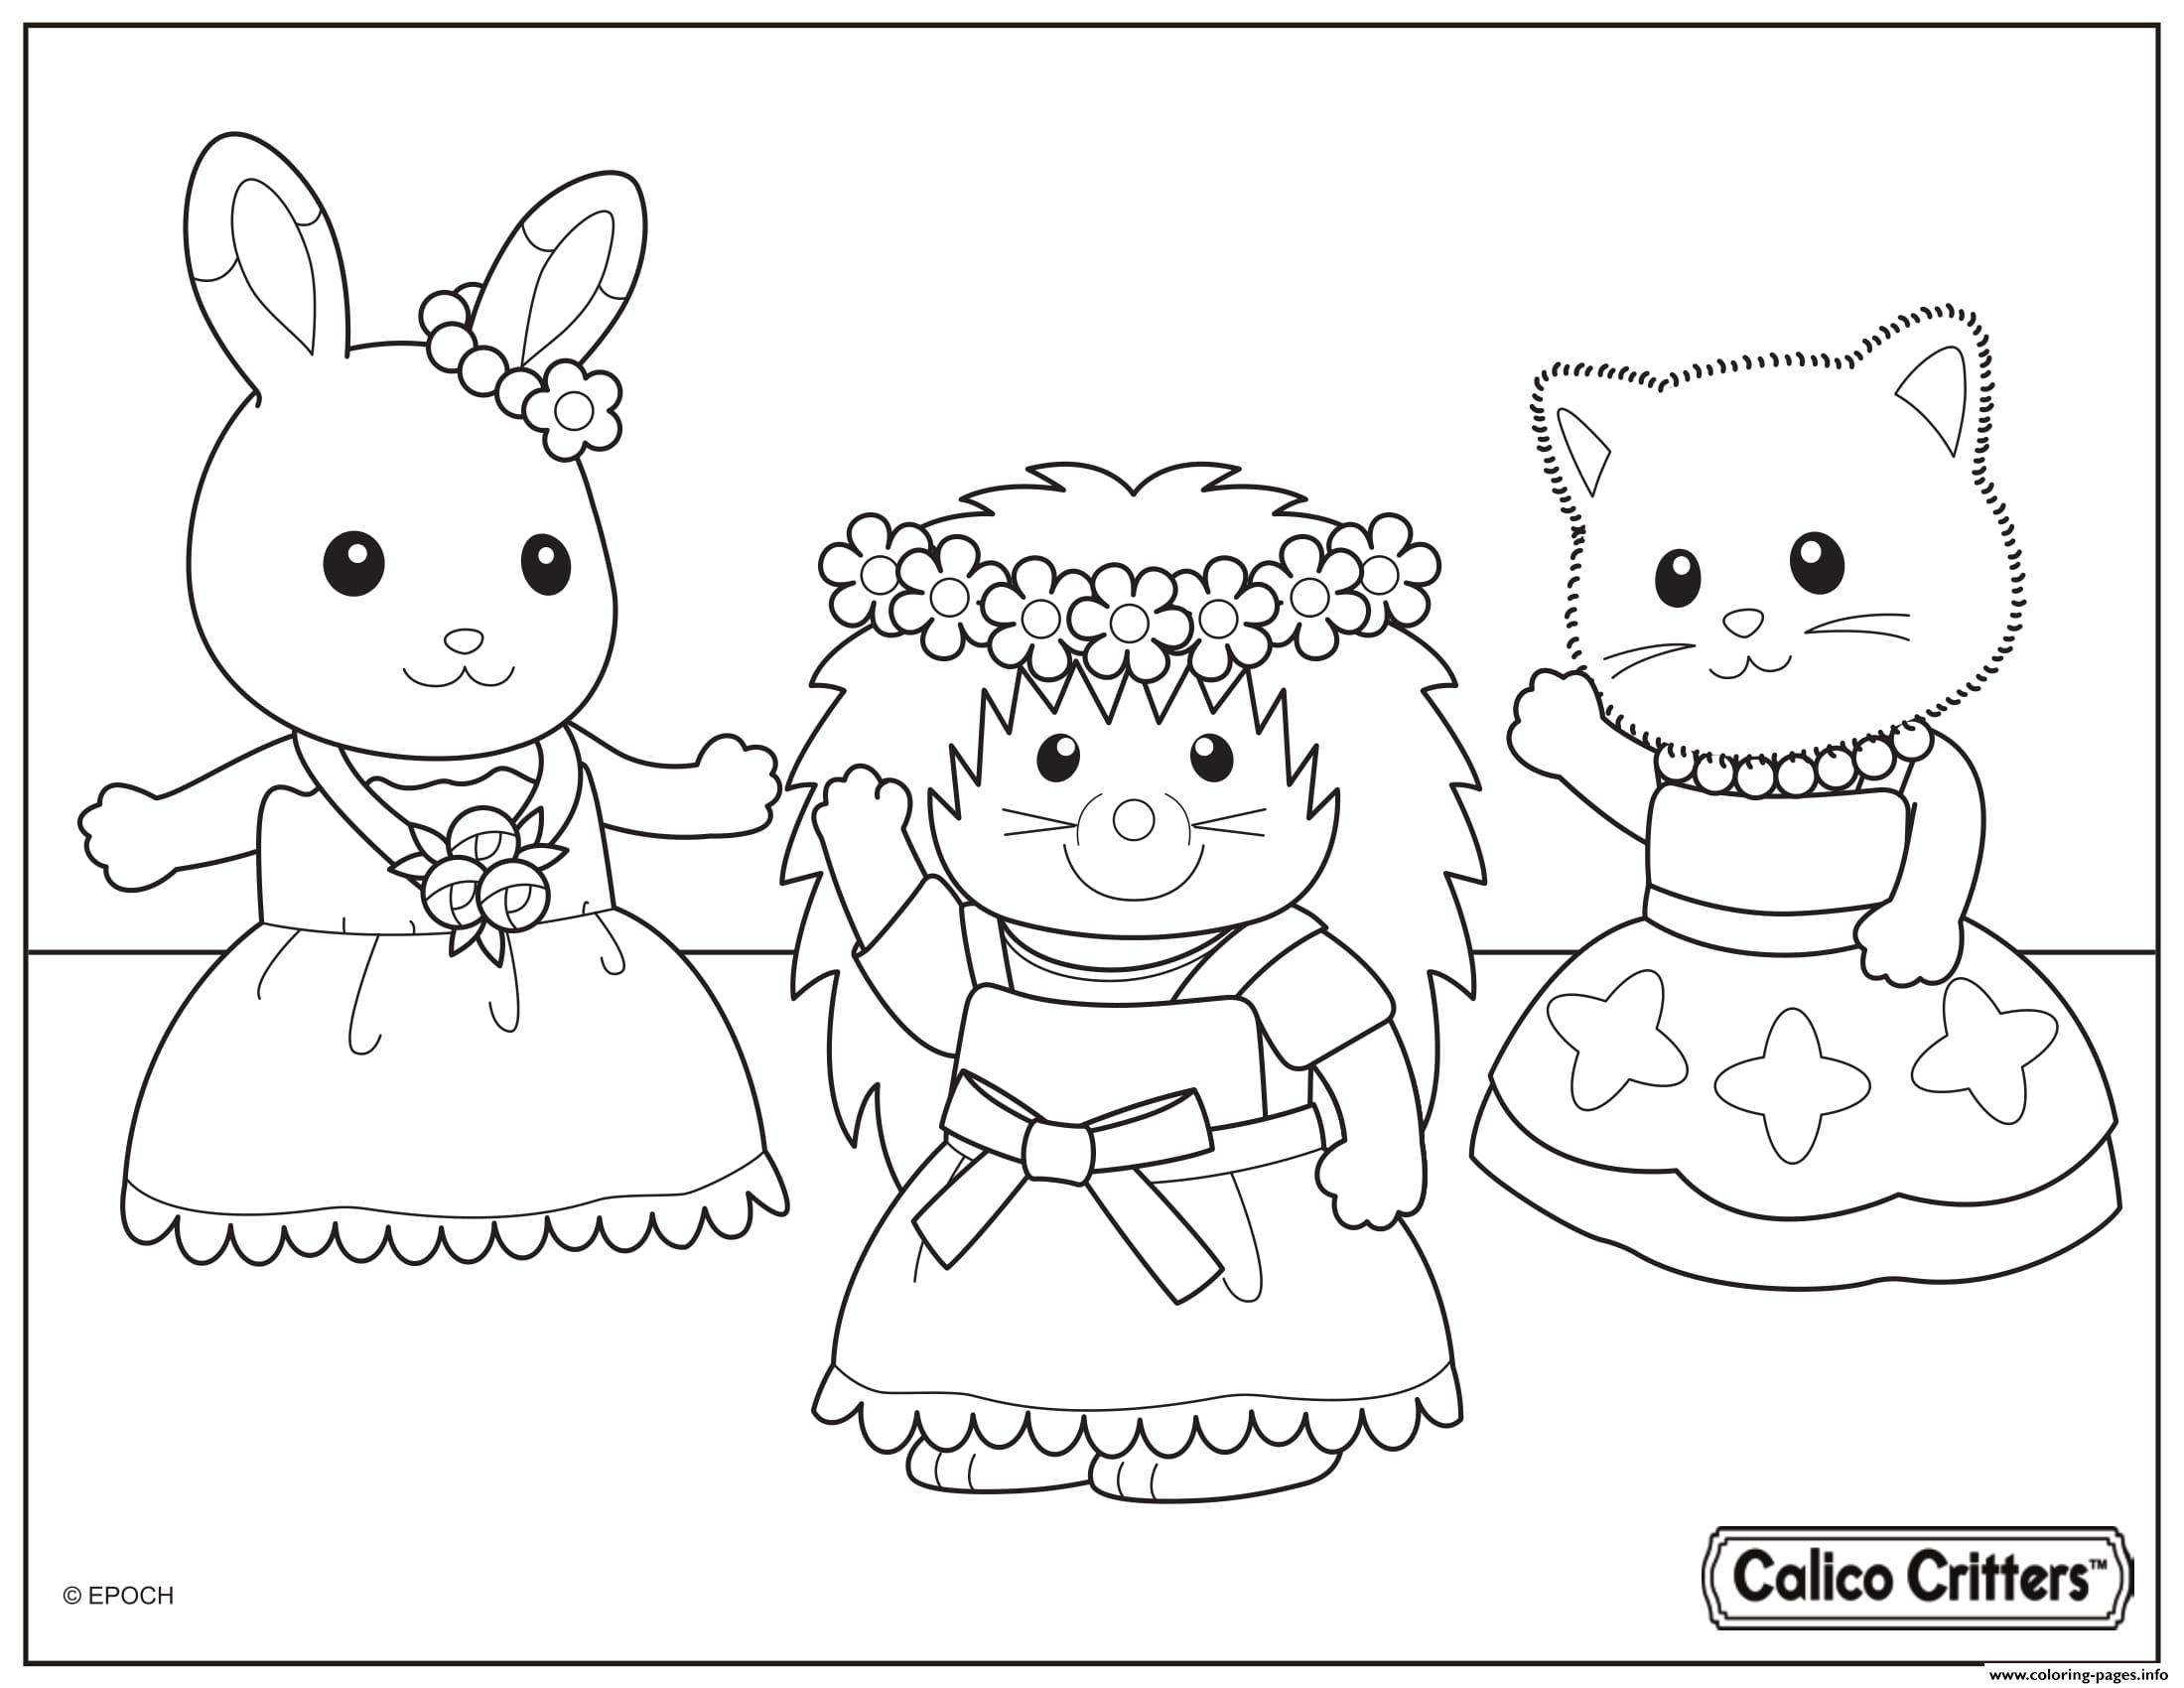 Calico critters dance party time coloring pages printable for Little critter coloring pages